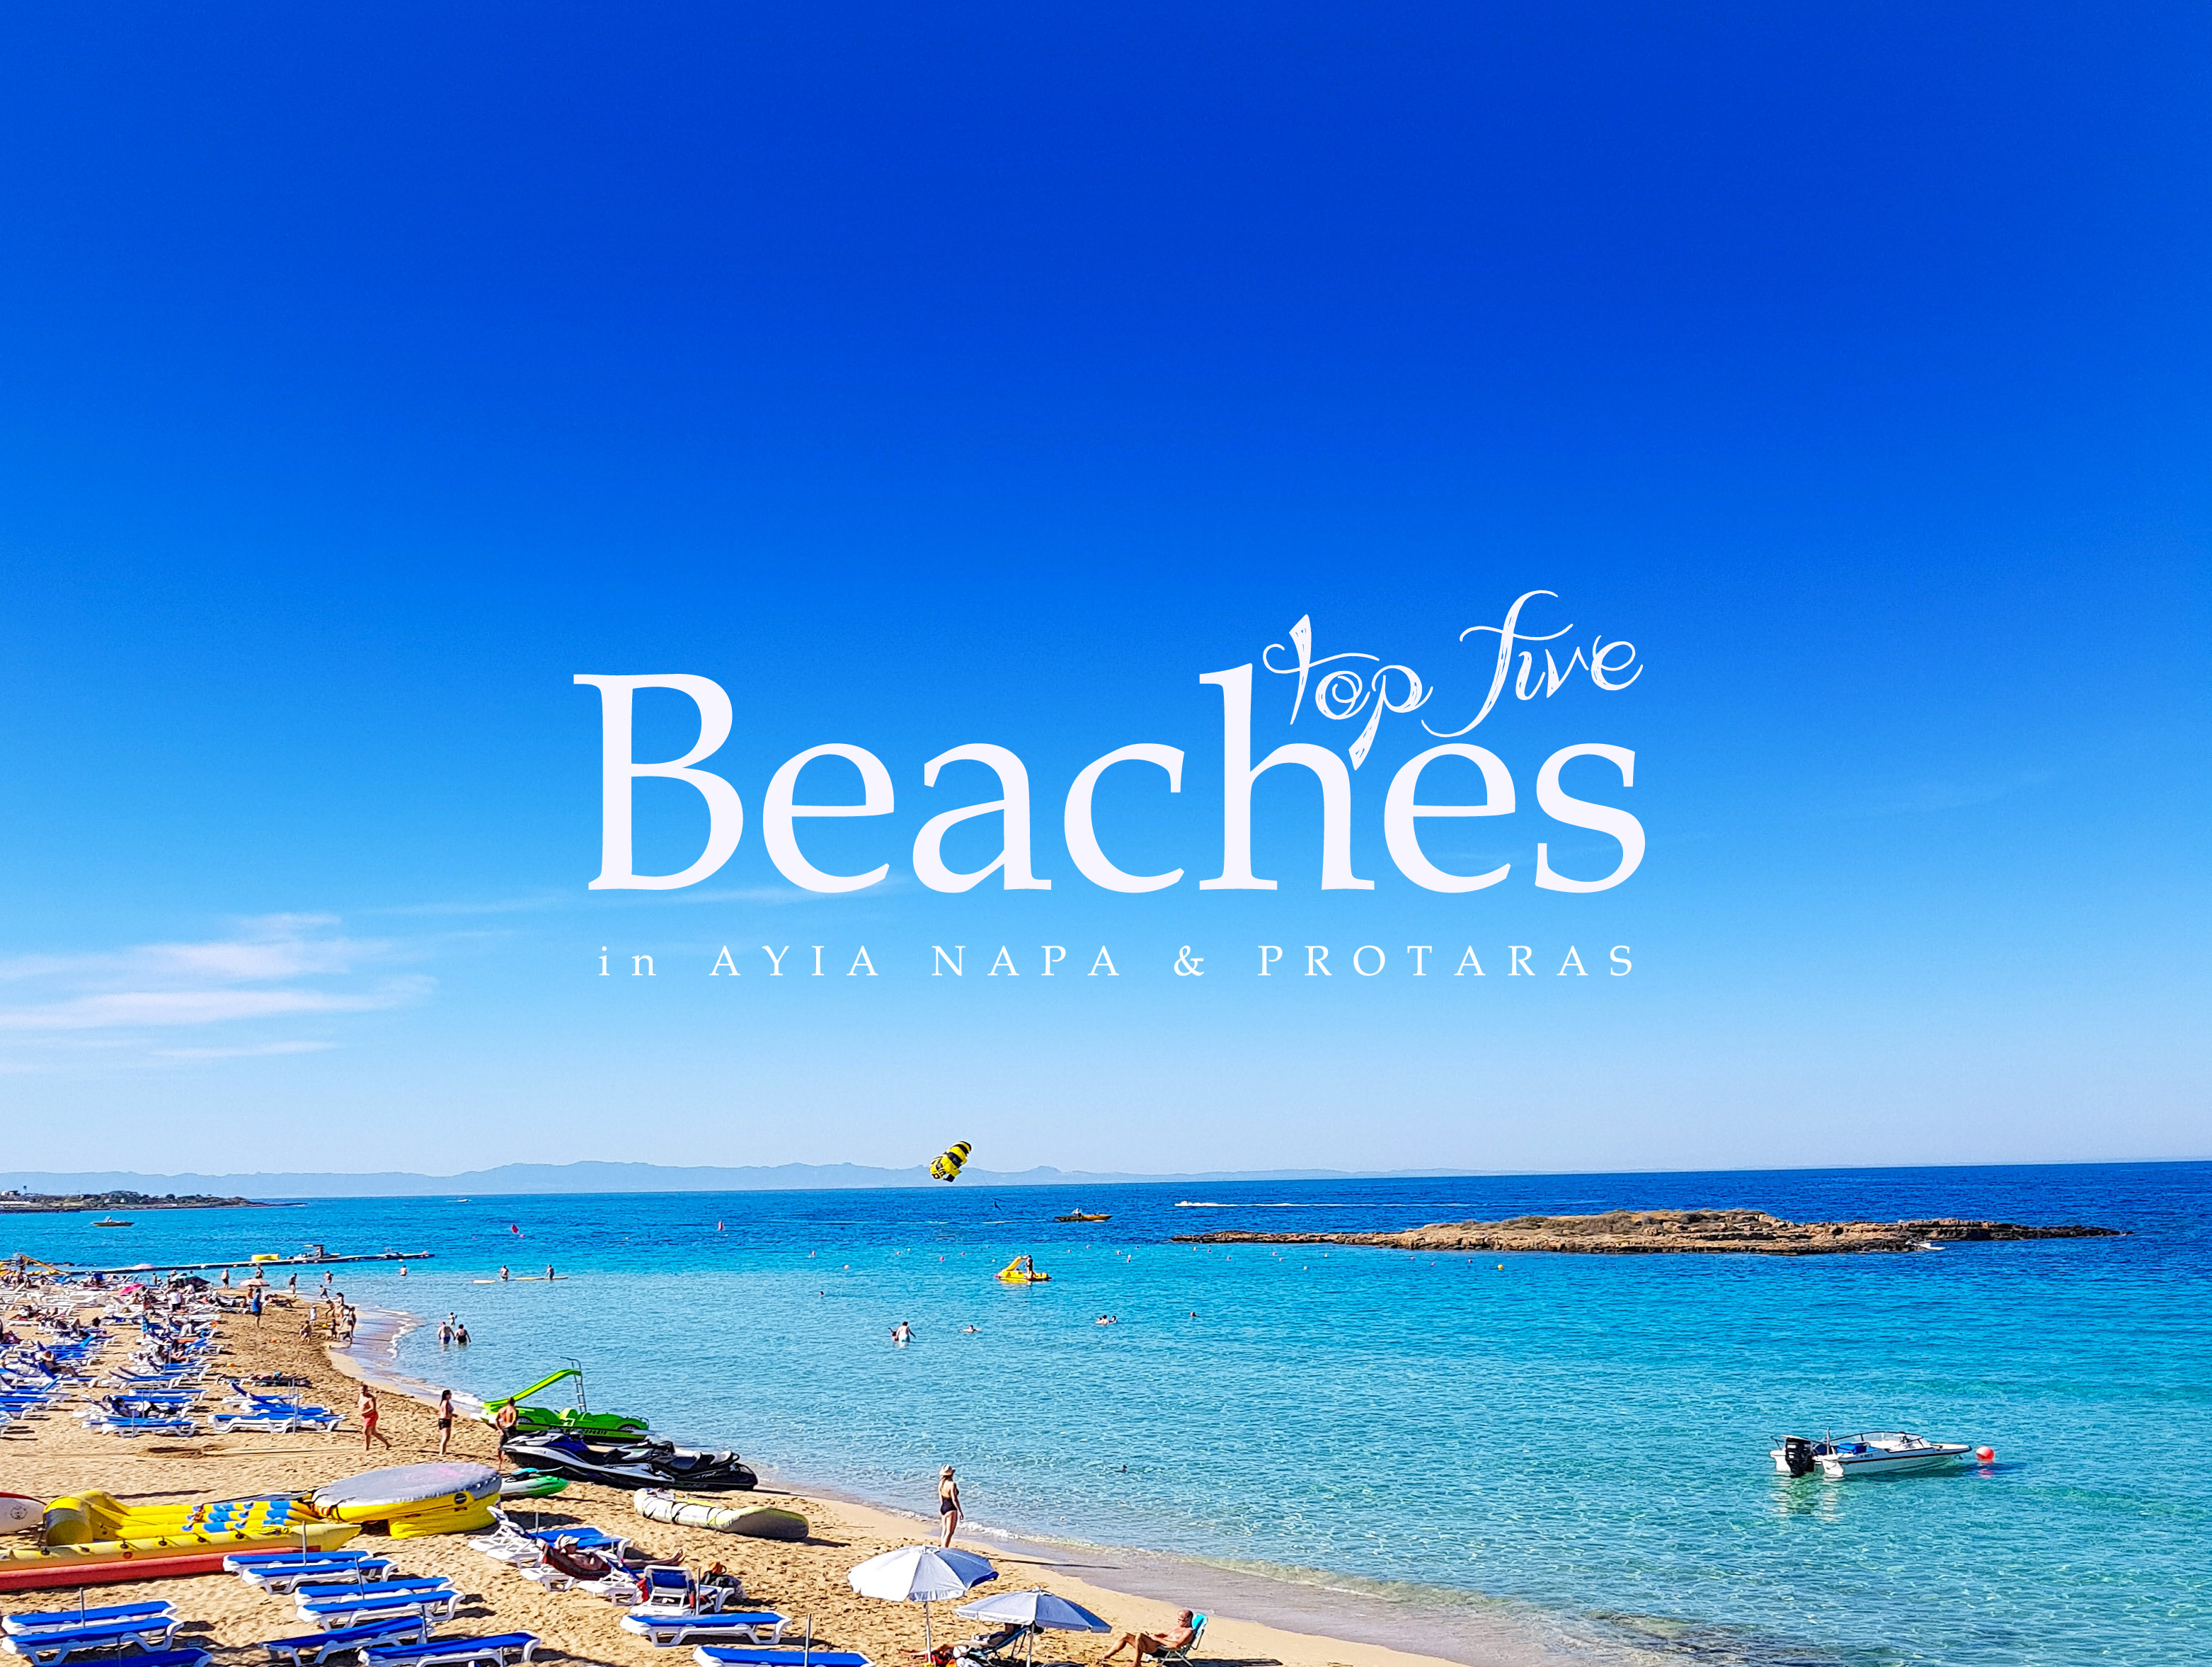 TOP 5 BEACHES IN AYIA NAPA & PROTARAS